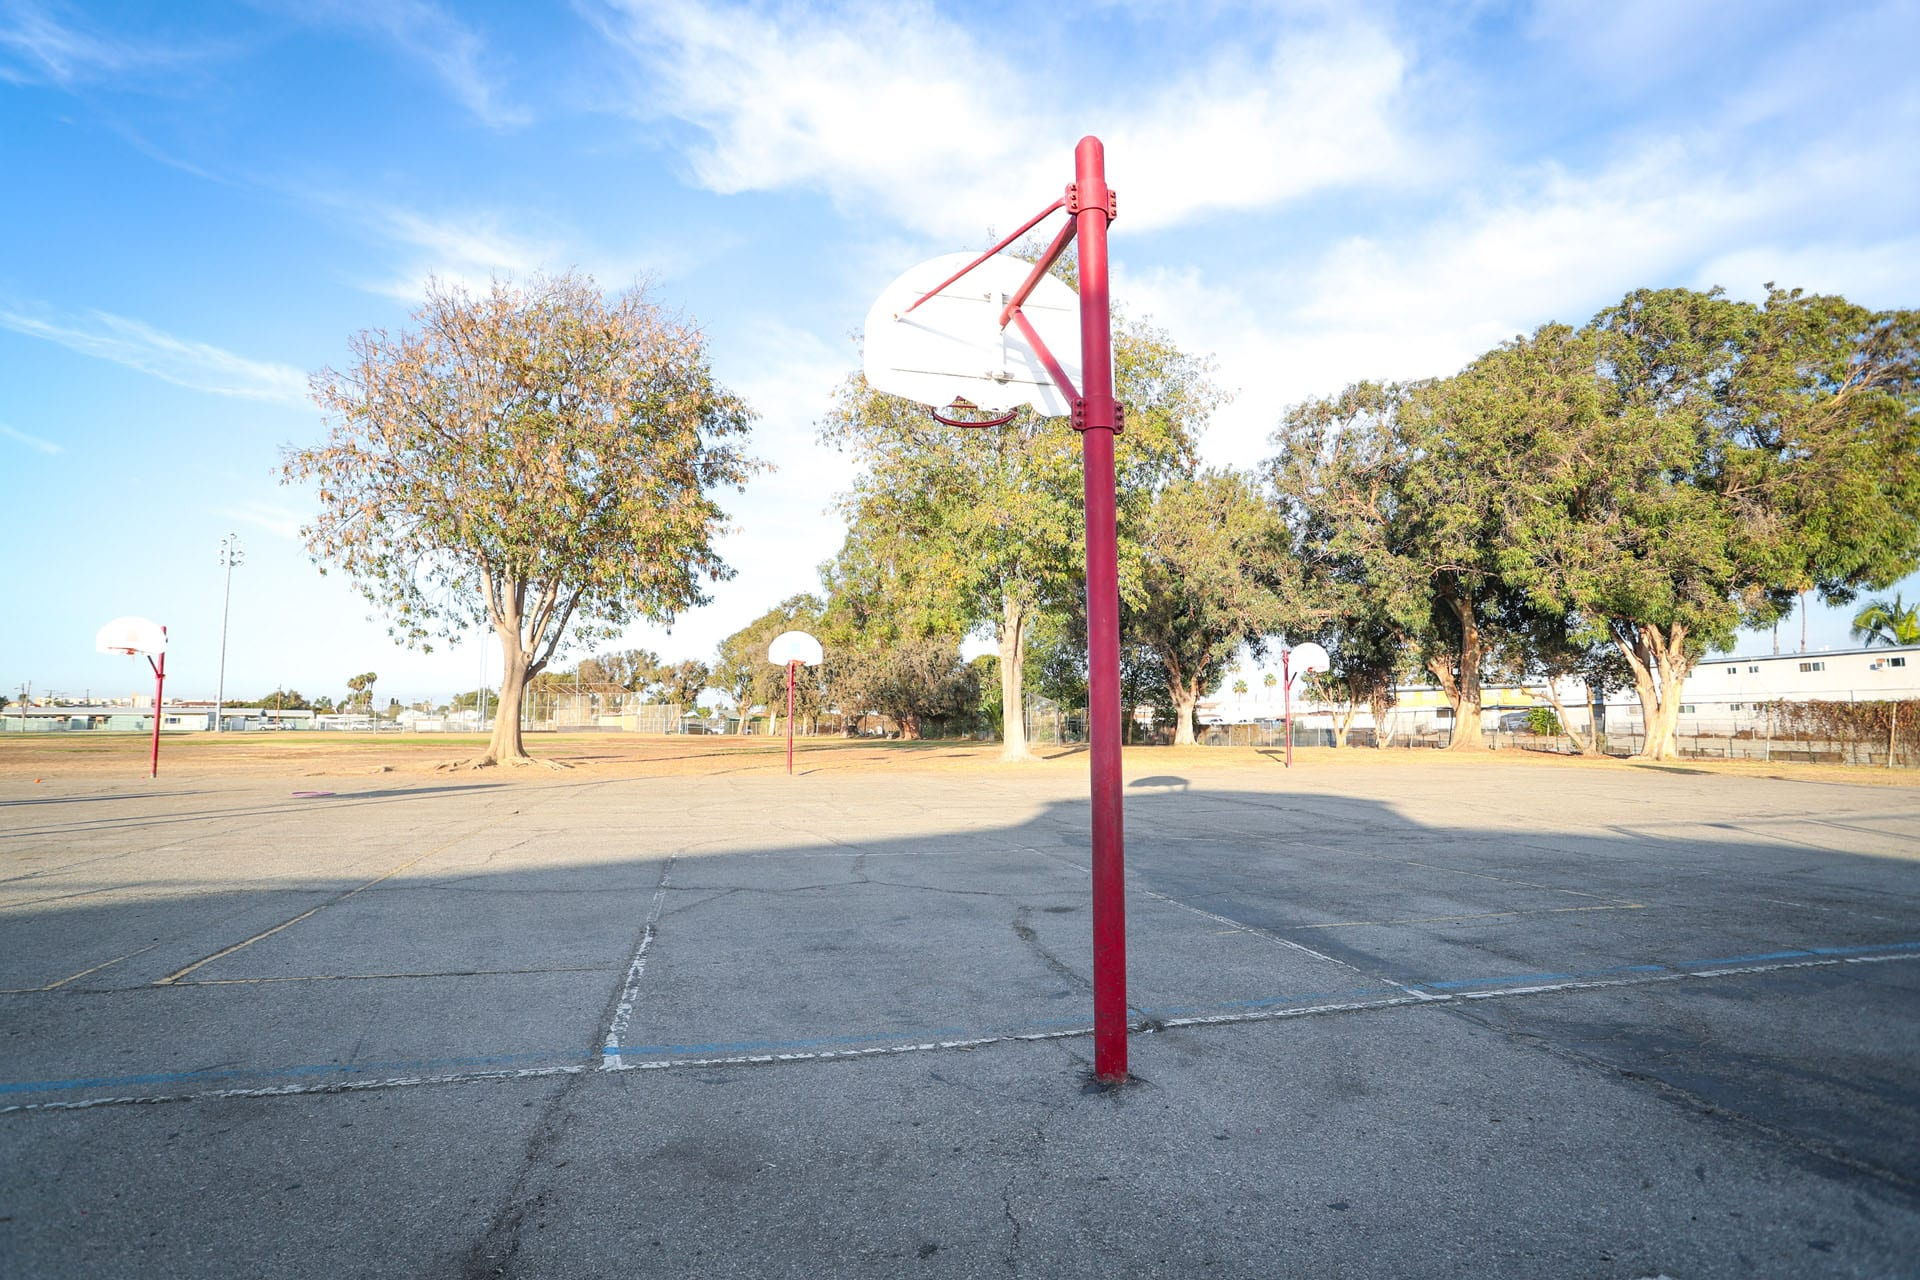 Basketball courts with hoops on red posts